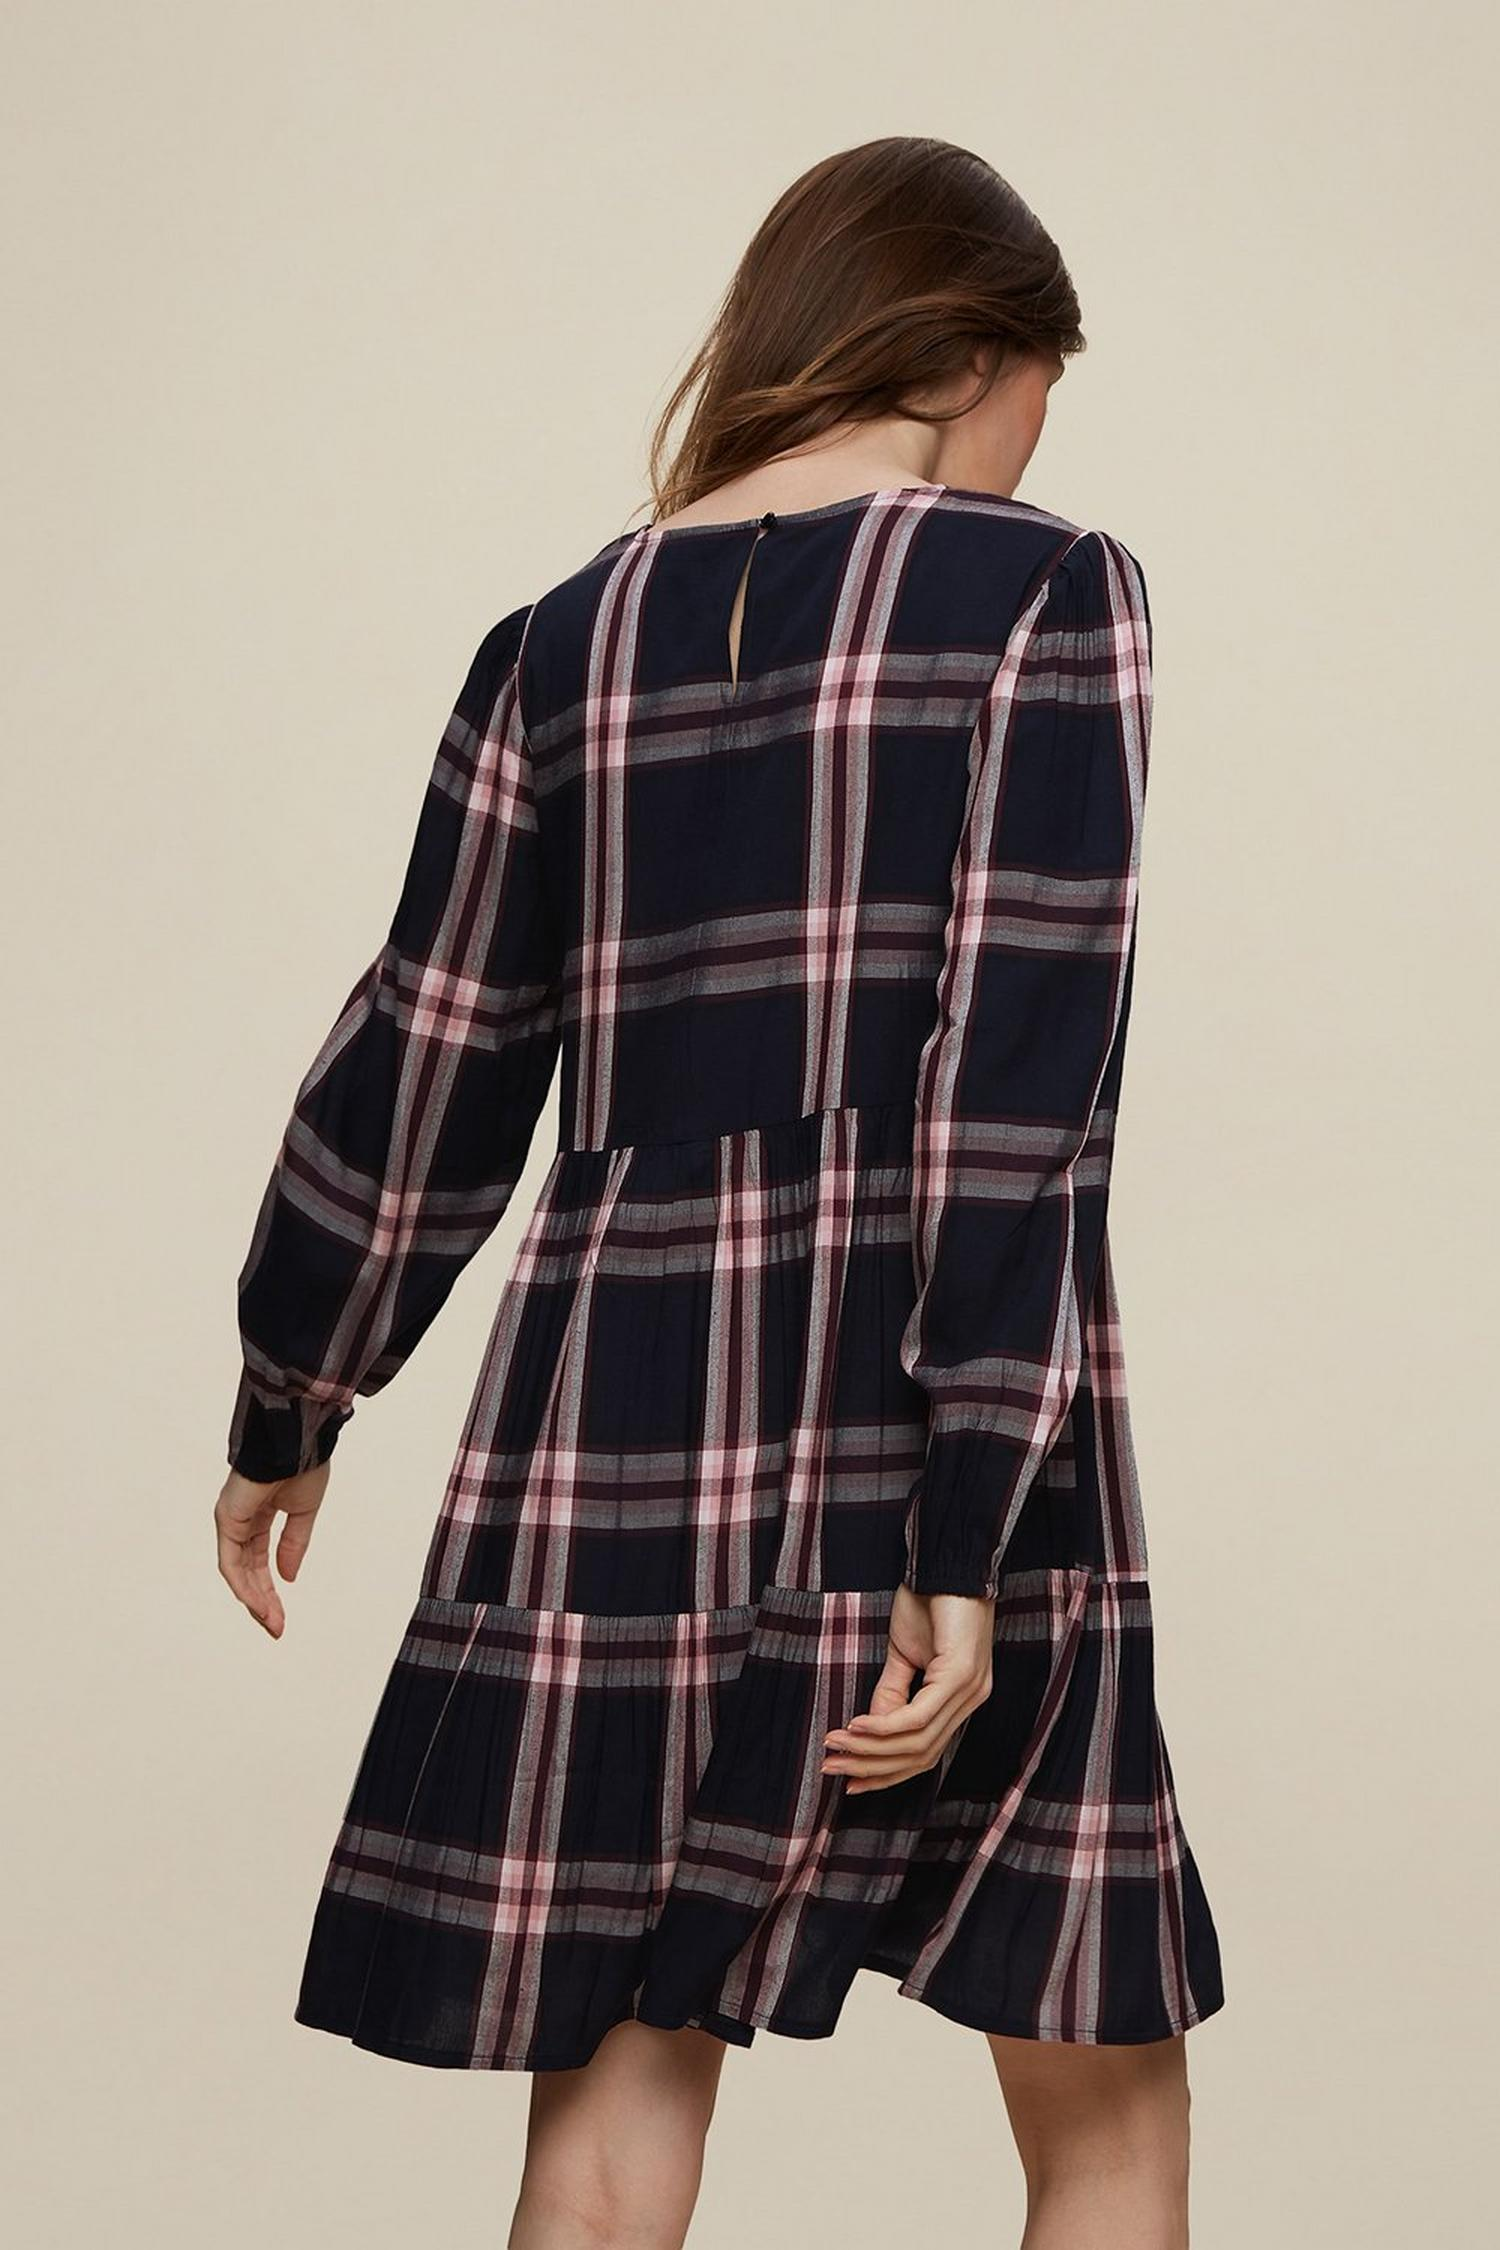 148 Maternity Navy Check Print Smock Dress image number 2